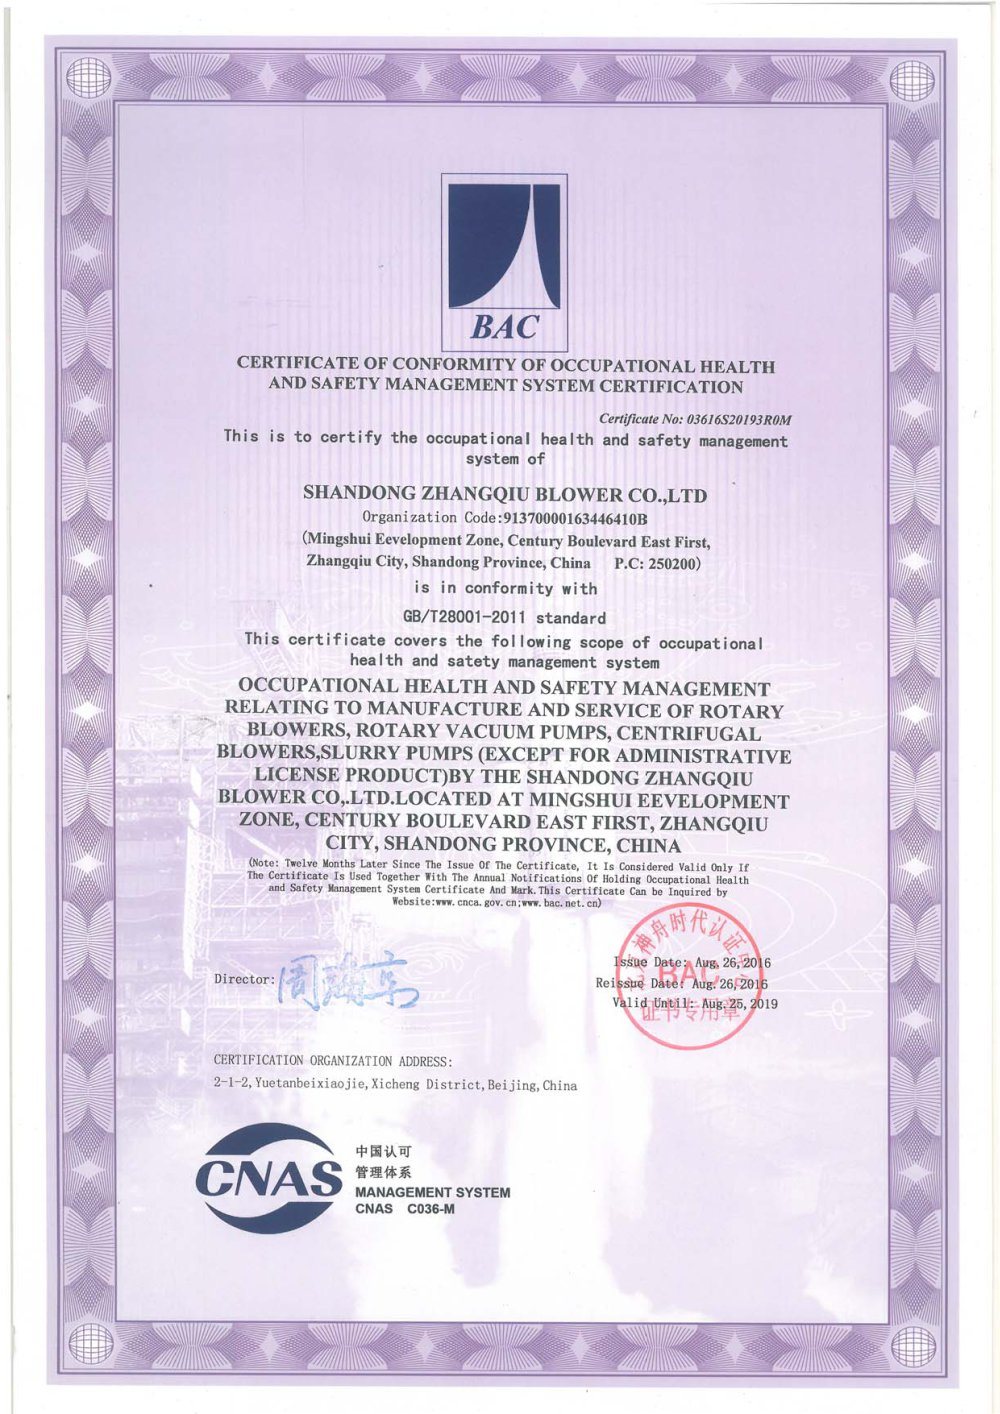 Health and safety certificate shandong zhangqiu blower coltd health and safety certificate 1 1 pages 1betcityfo Gallery